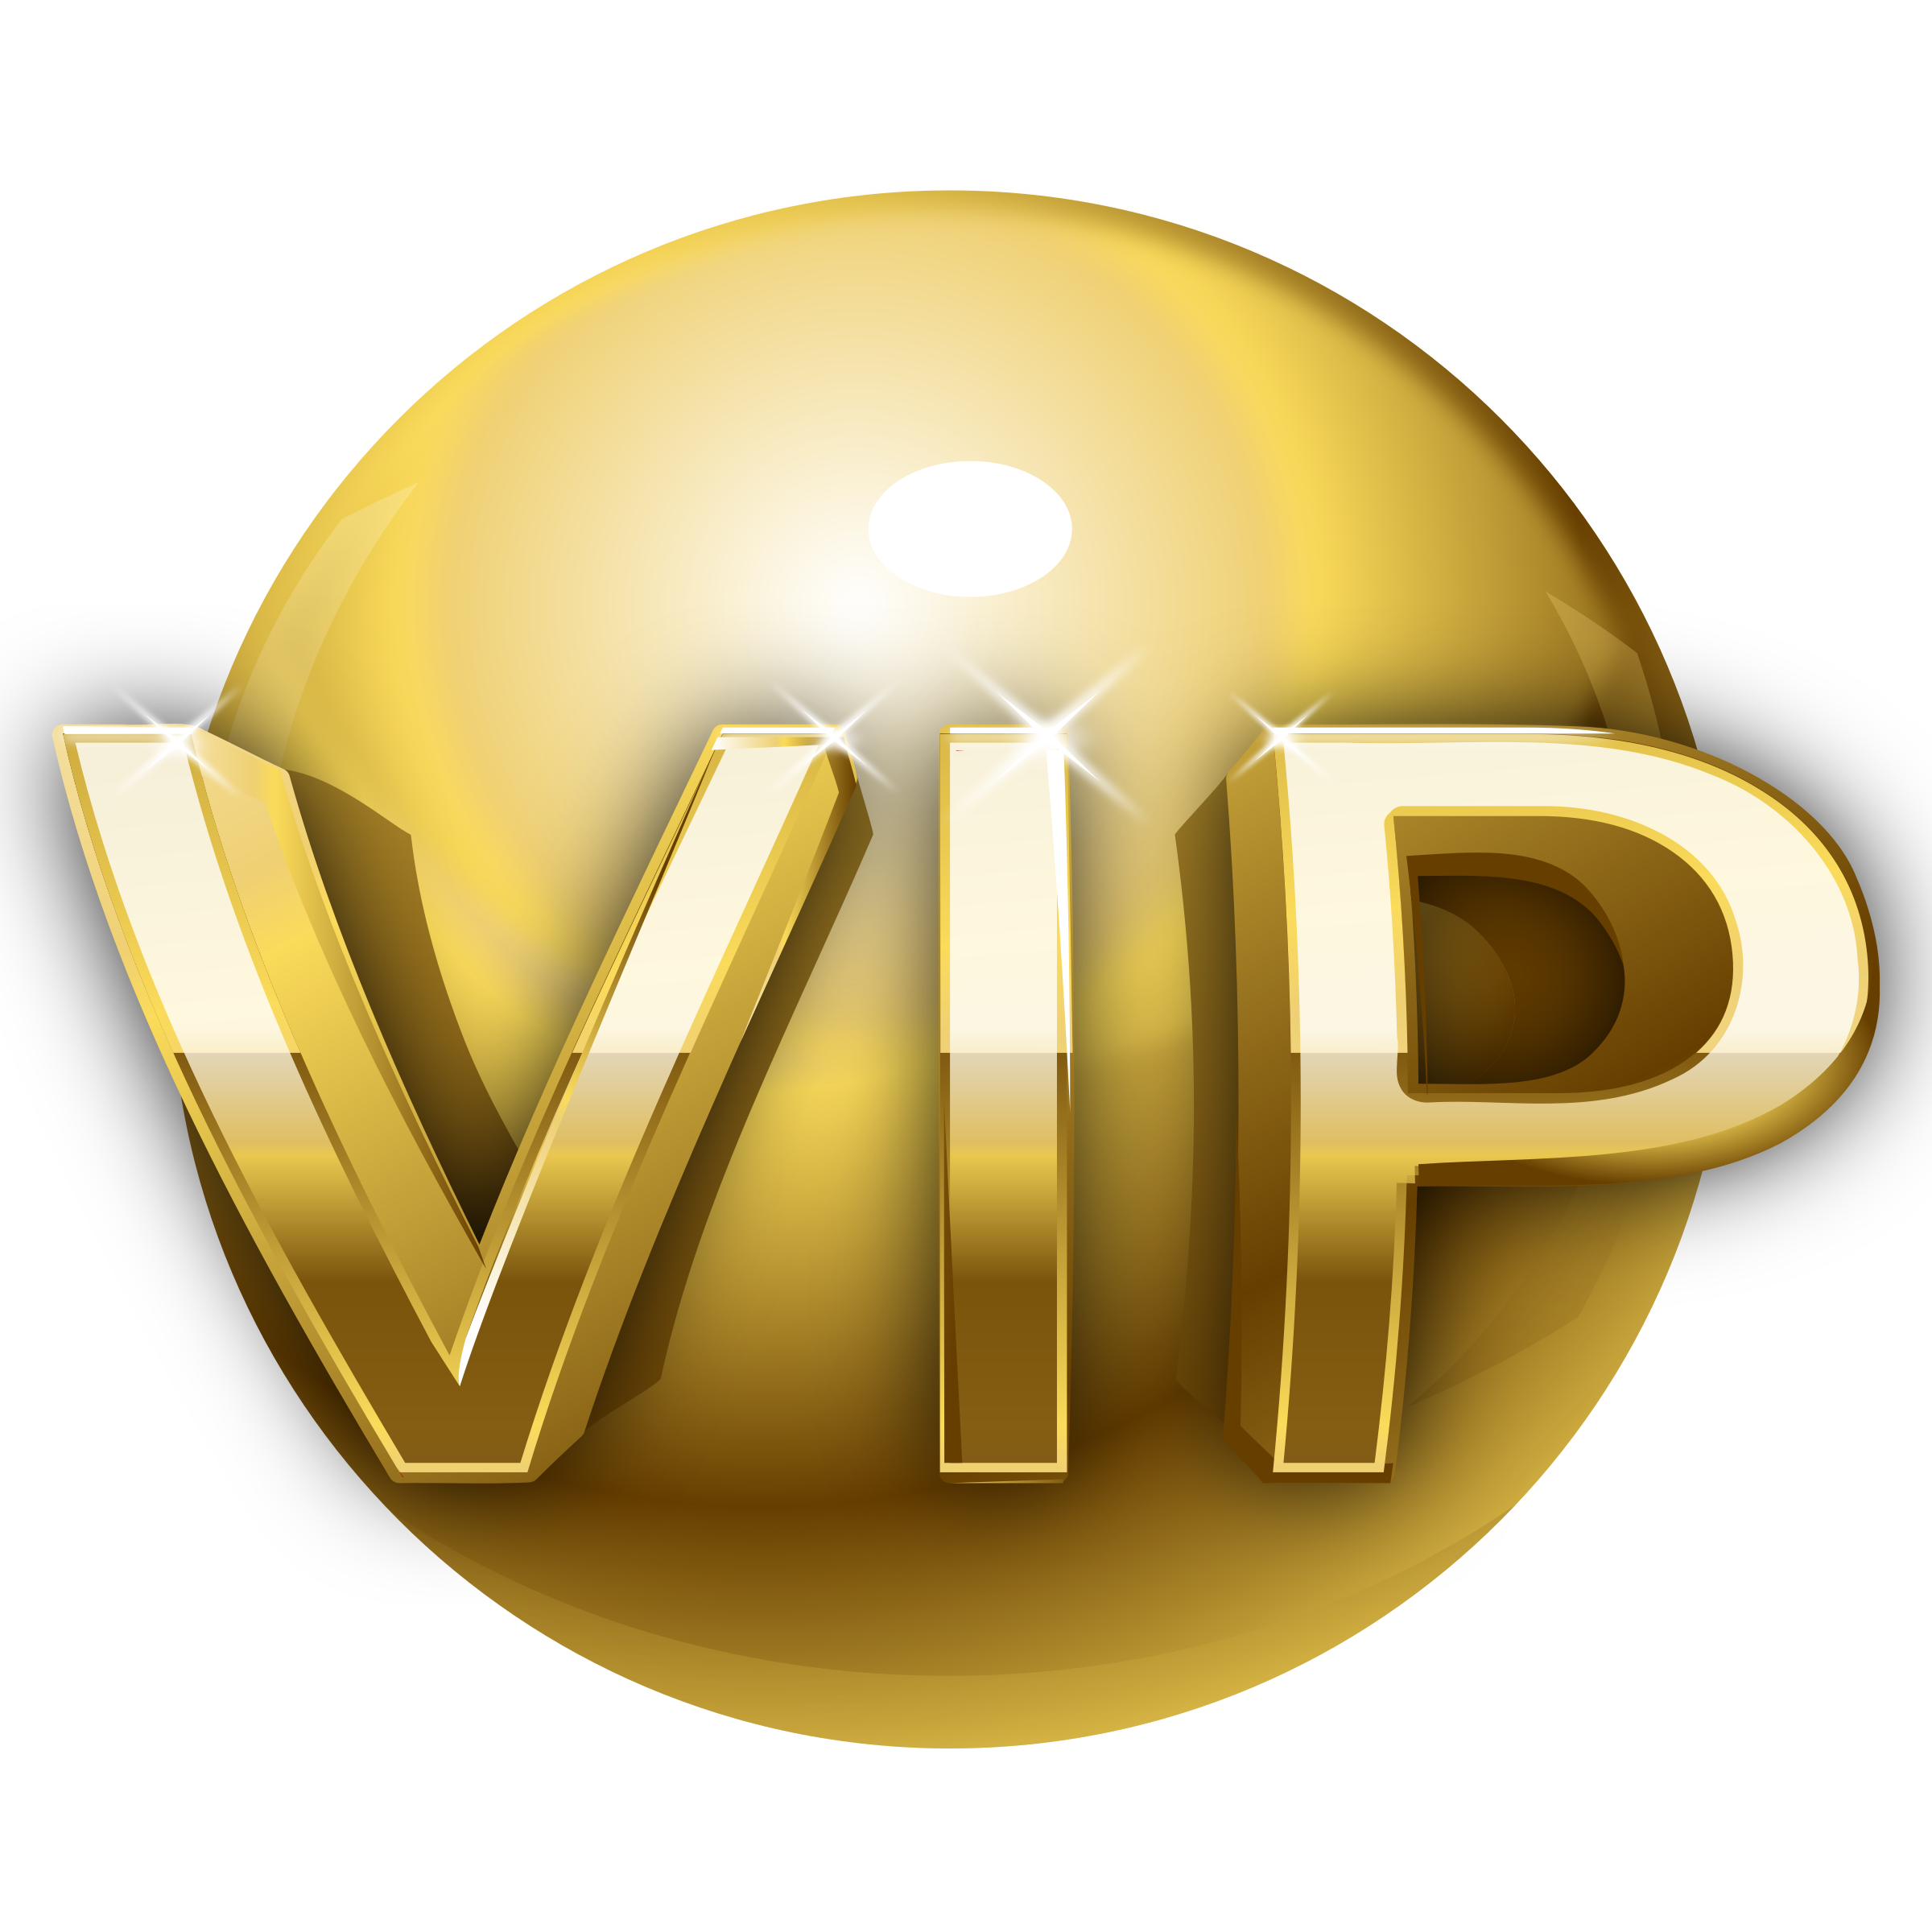 V i ip clipart banner library download Be a VIP for the day | Construction Leaders Club banner library download